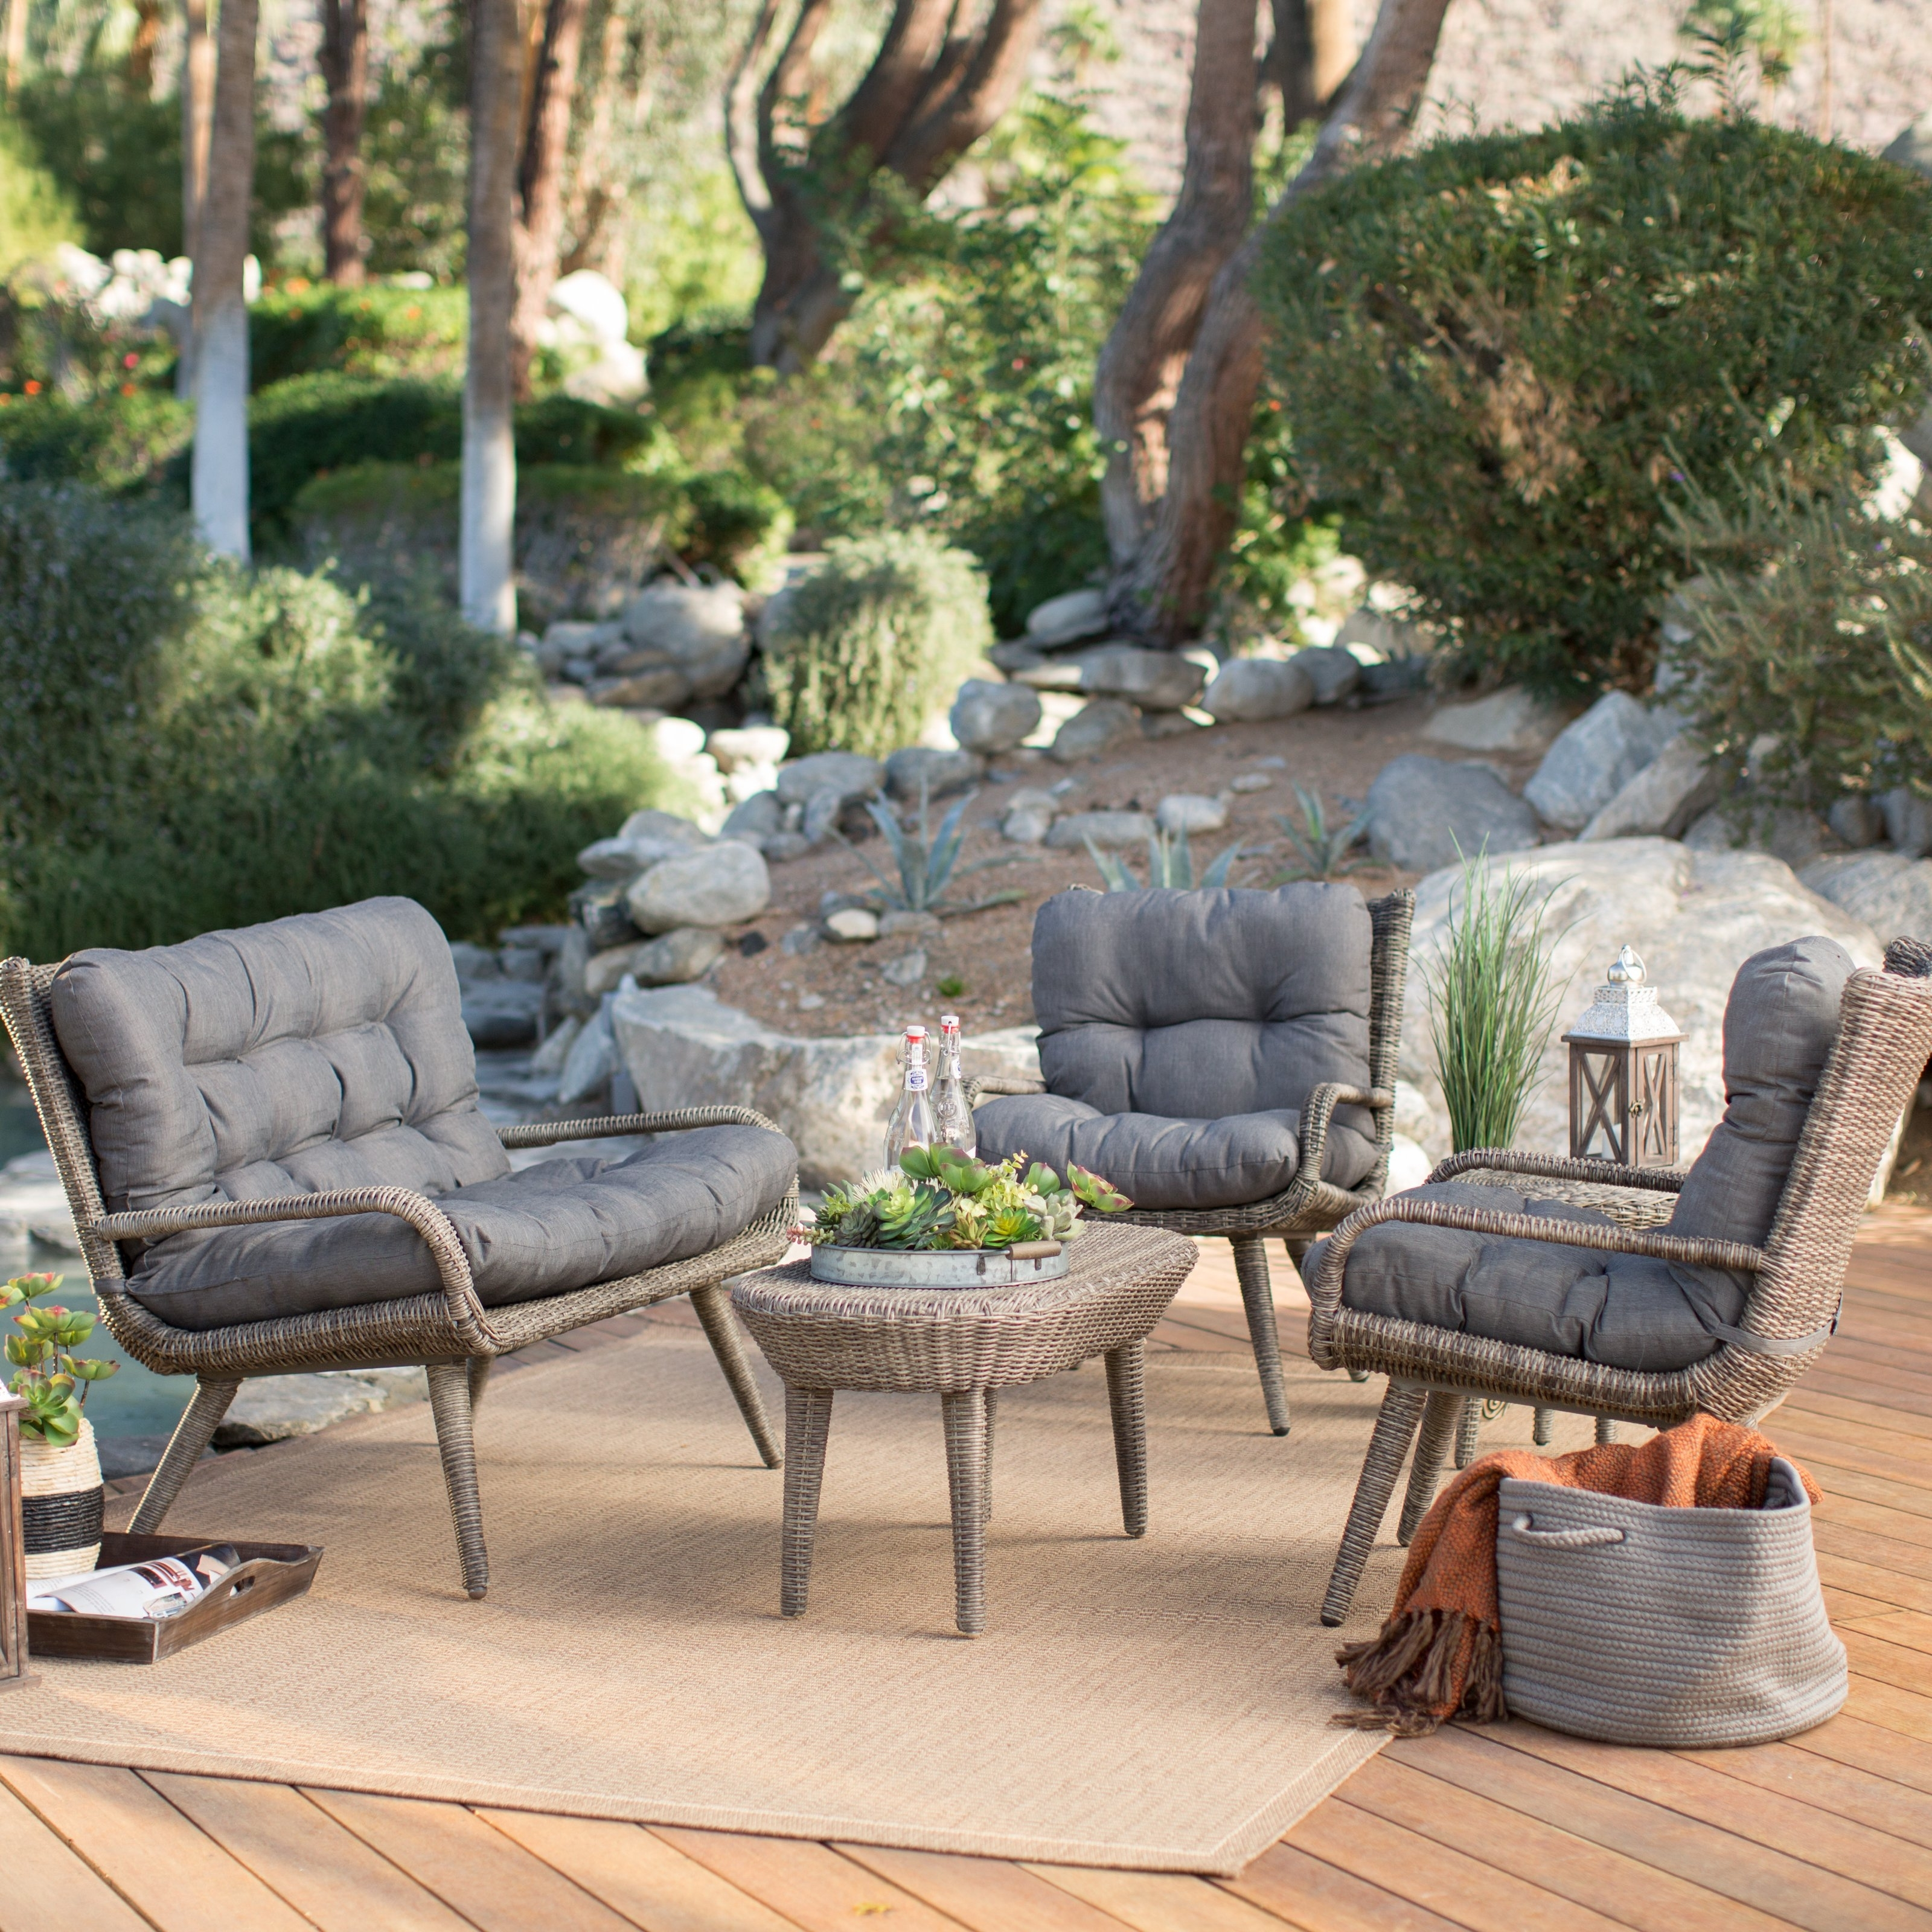 Fashionable Wood Patio Furniture Conversation Sets With Regard To Furniture: Exciting Outdoor Furniture With Gray Cushions On Beige (View 14 of 20)